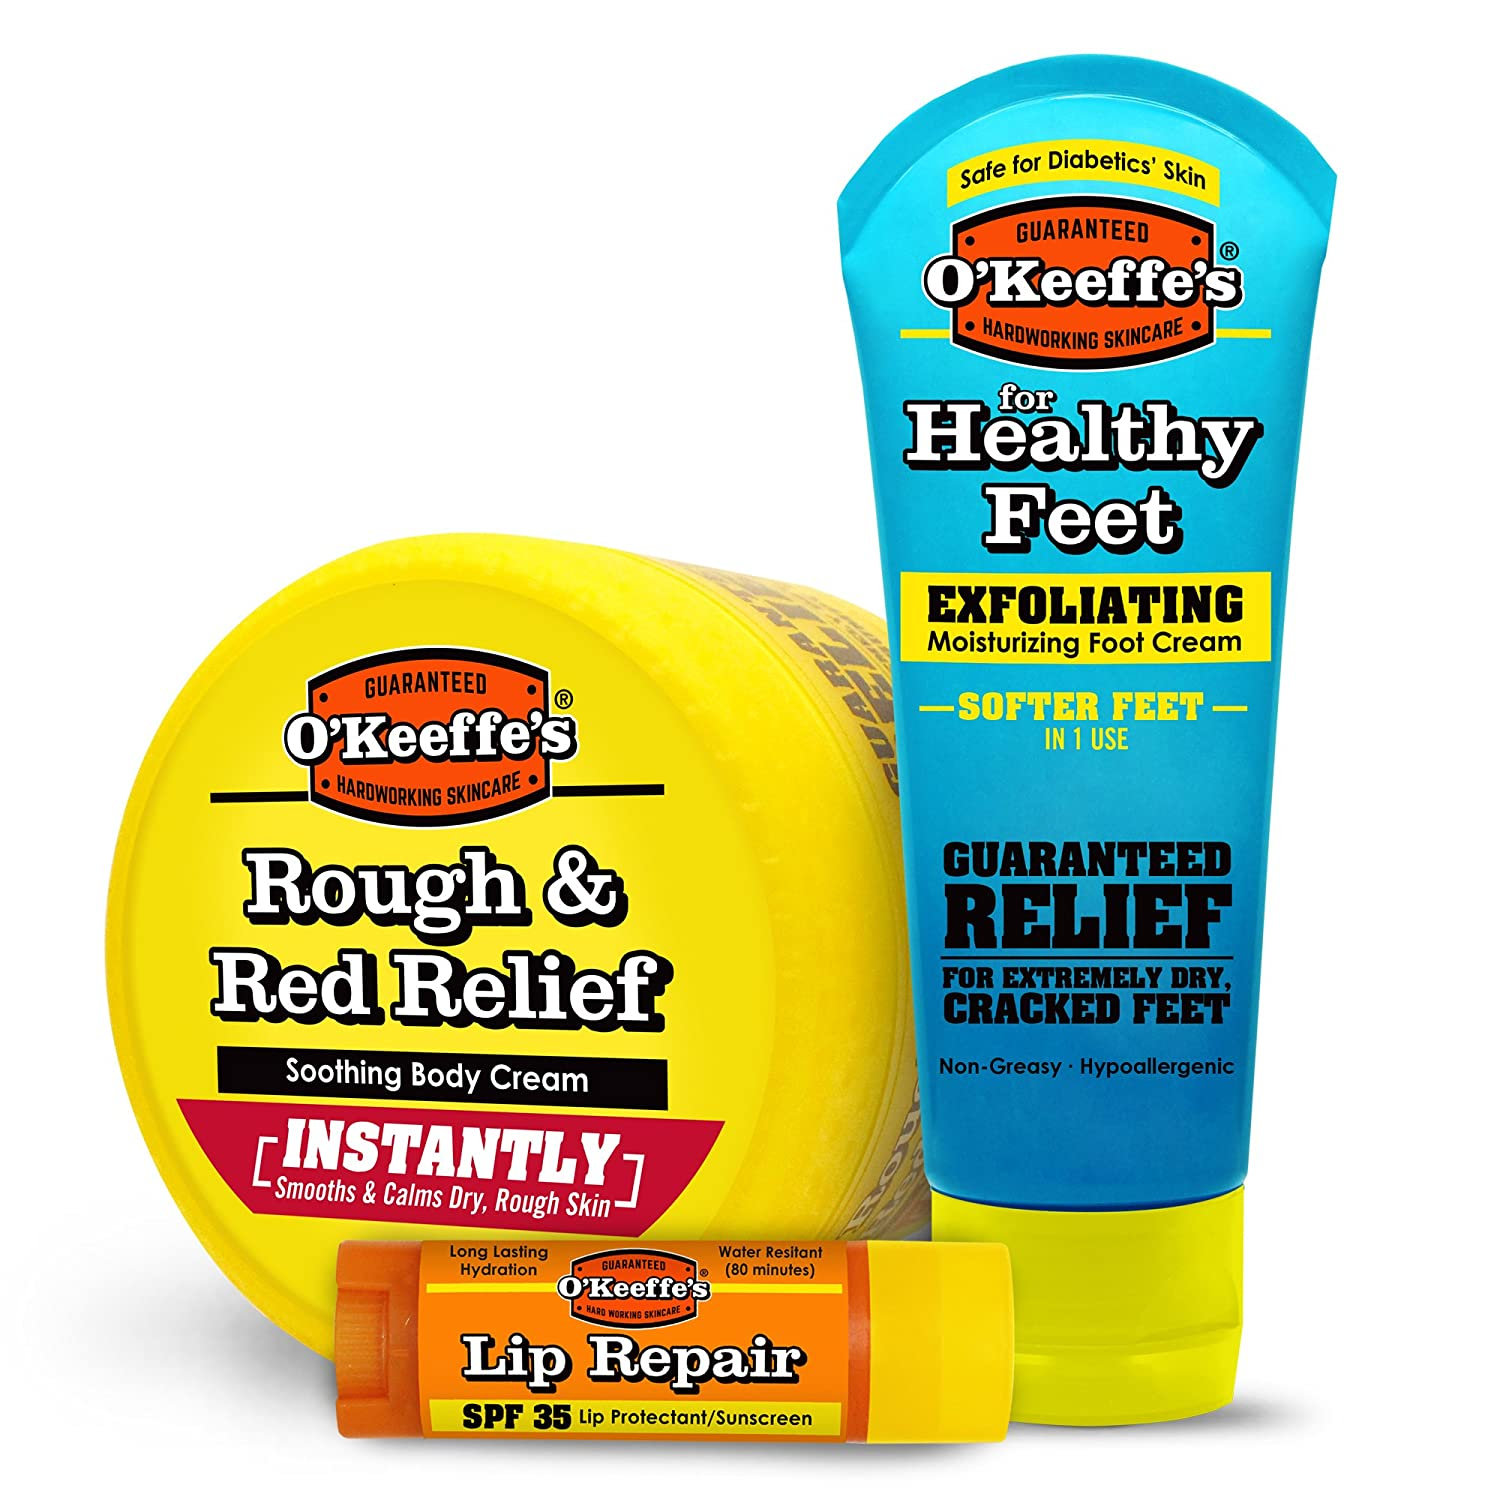 O'Keeffe's K0980049 Variety Lotion, Cream, Lip Balm, Various O' Keeffe' s